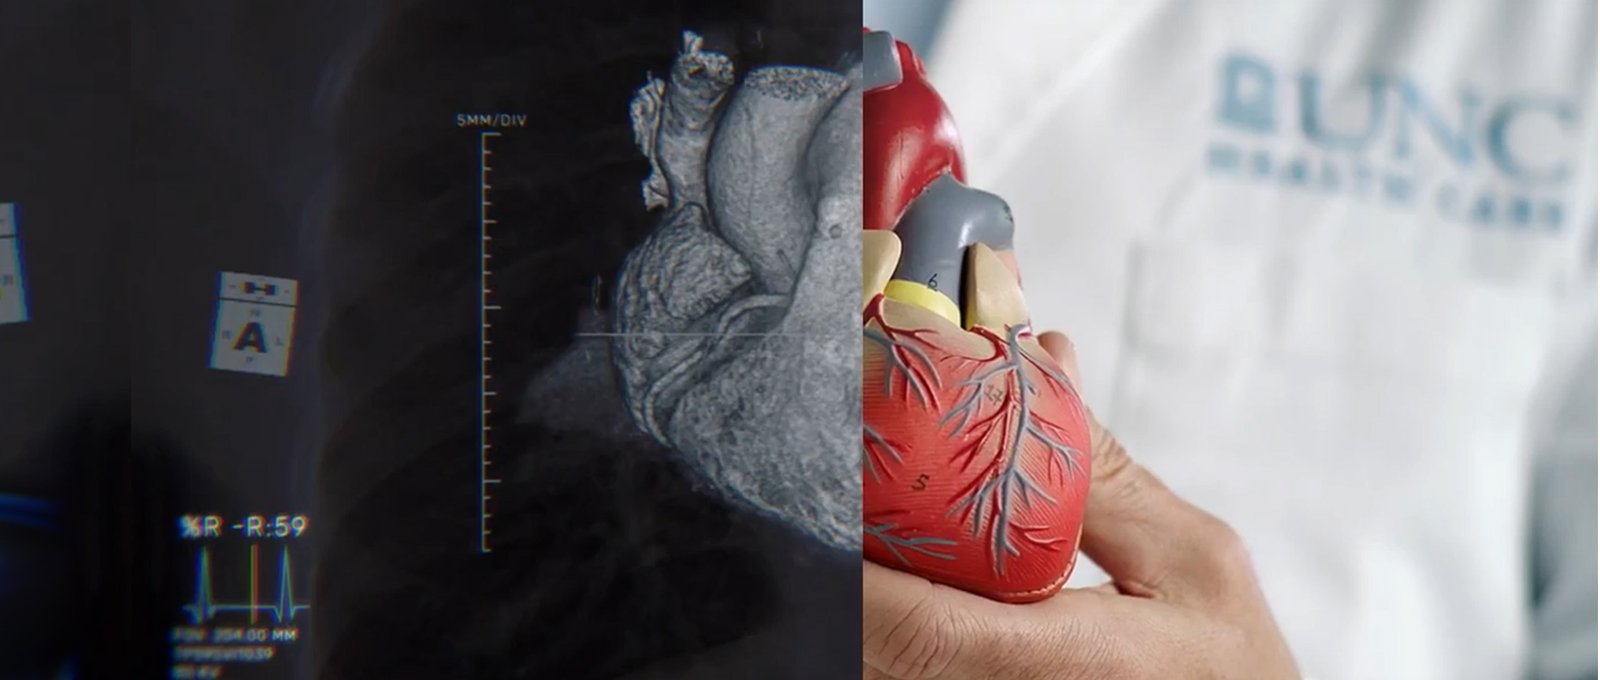 Image of model of heart with half of image an x-ray of heart and half of image a heart model